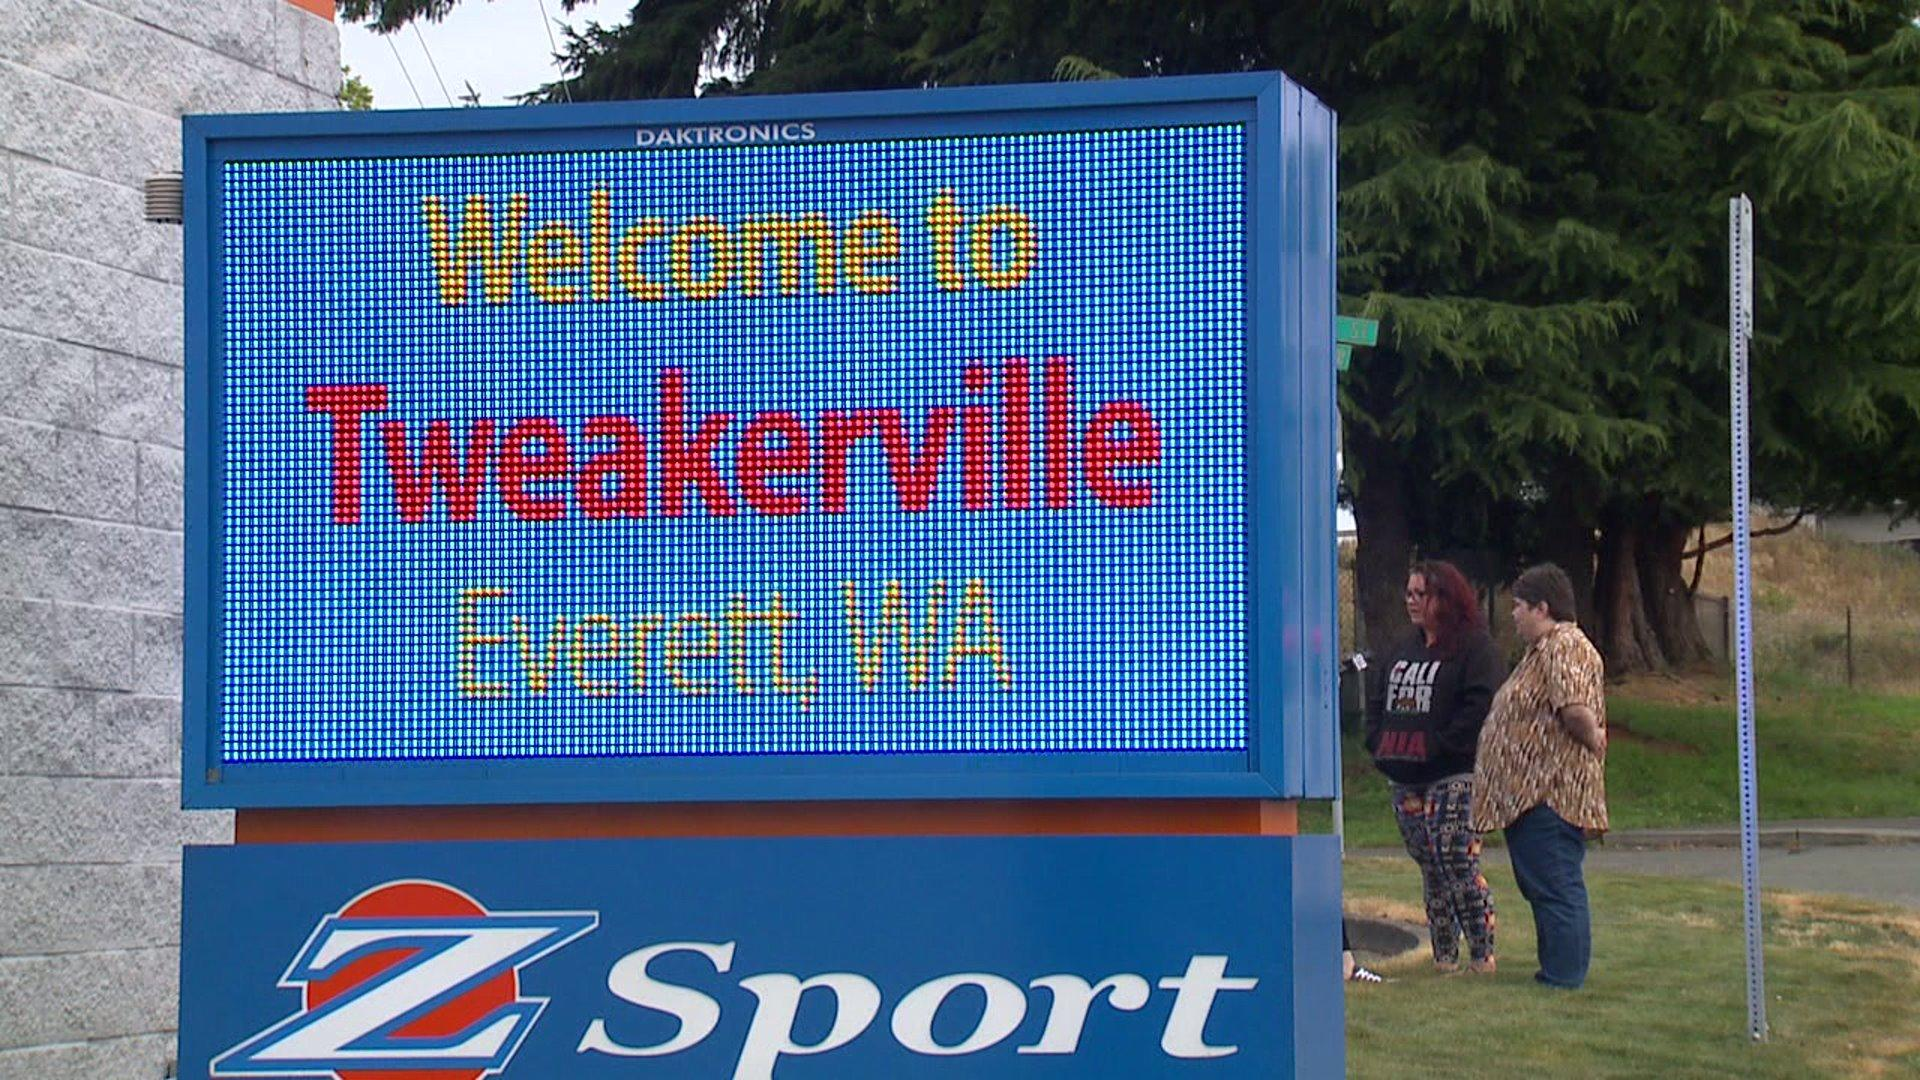 'Welcome to Tweakerville' Sign Sparks Controversy in Washington City